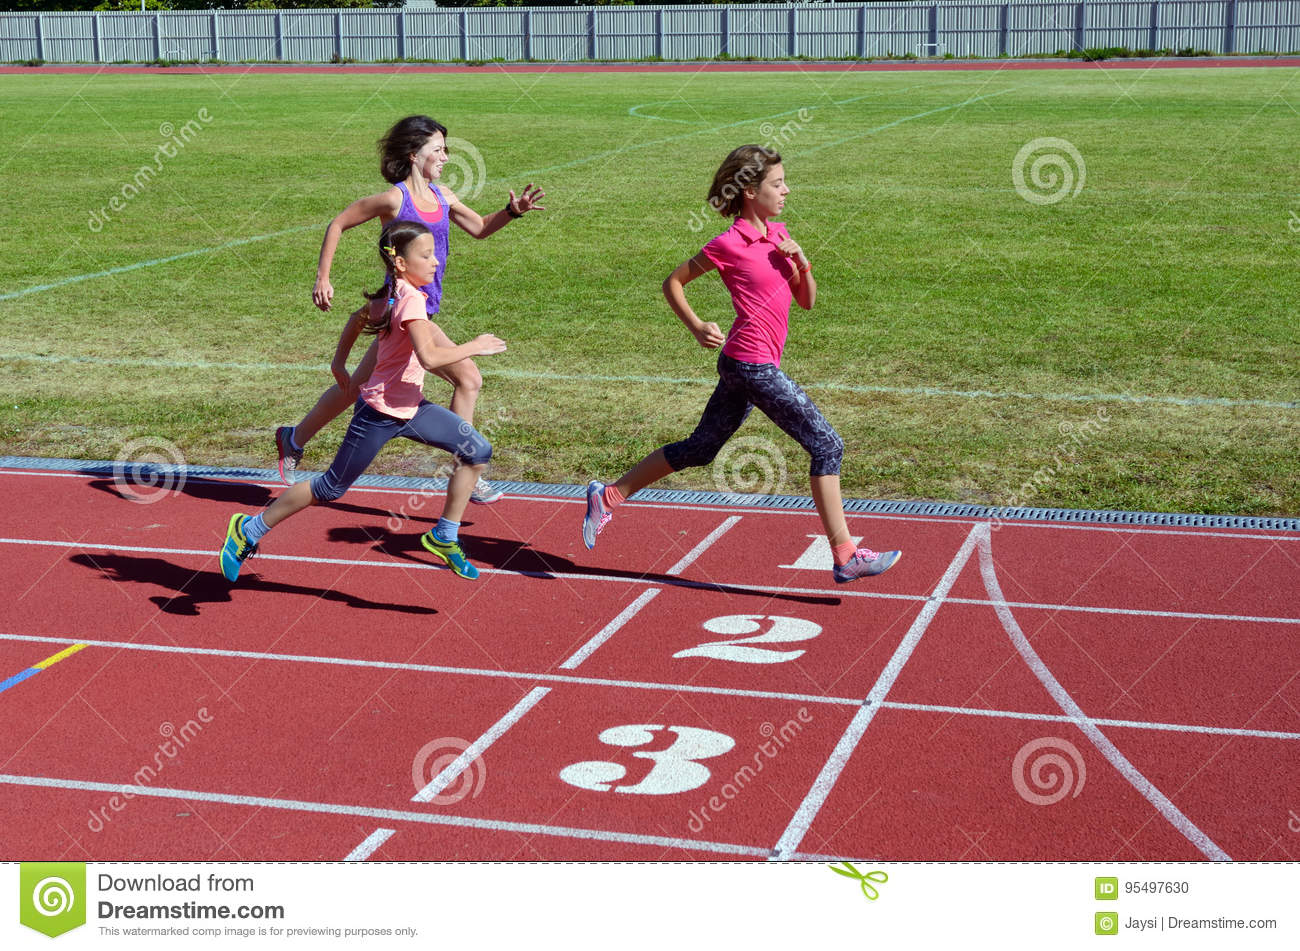 Family fitness, mother and kids running on stadium track, training and children sport healthy lifestyle